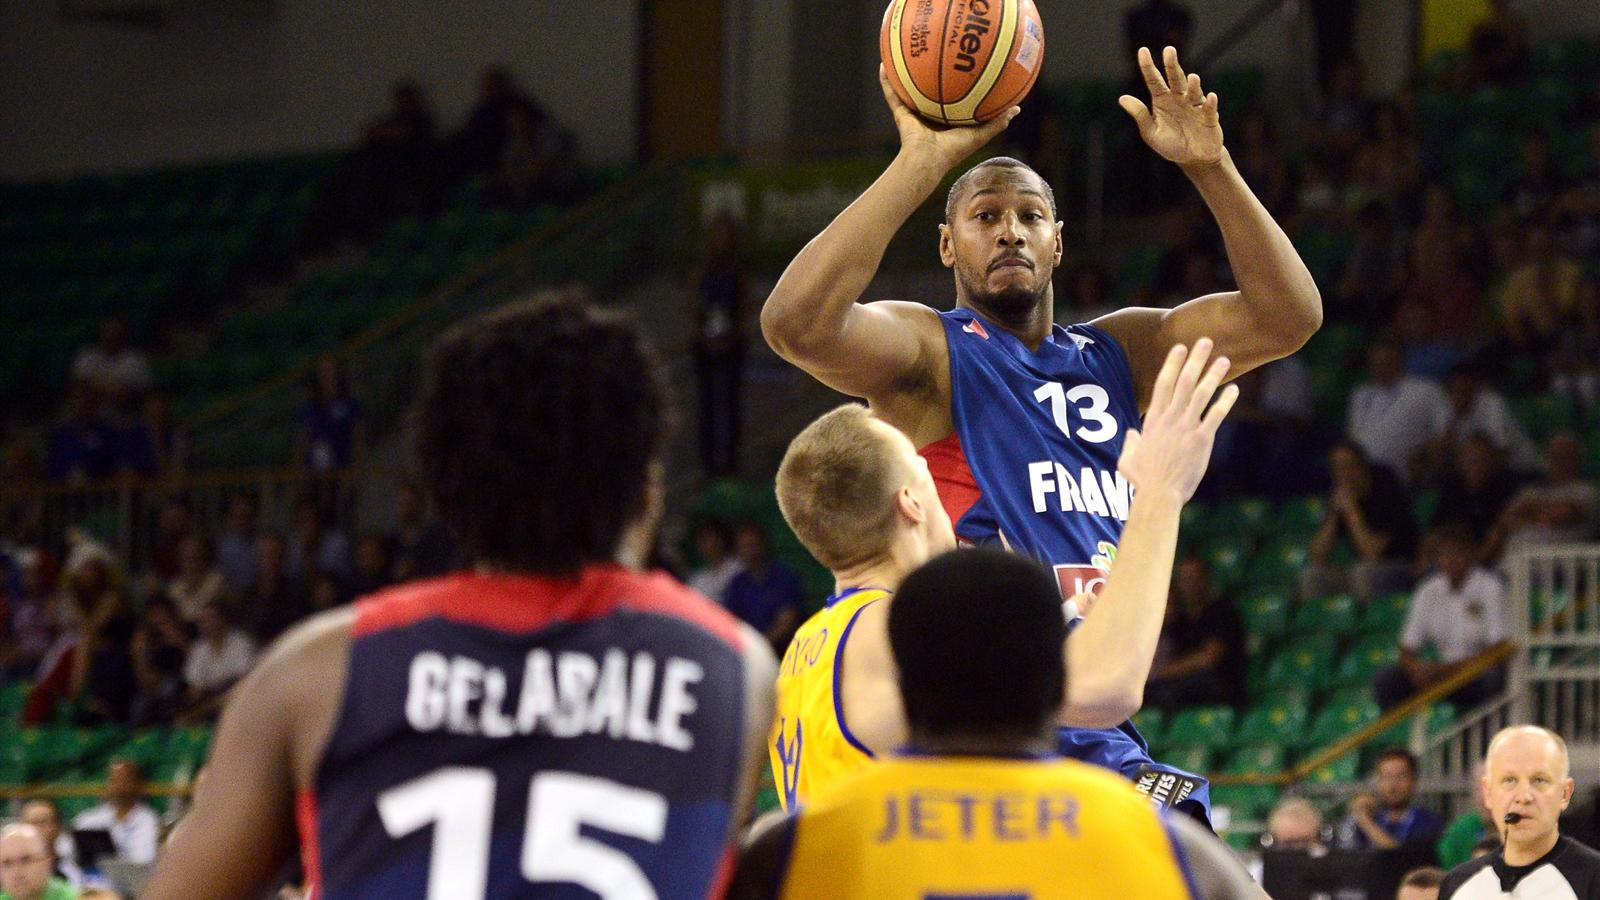 Basketball Match France Ukraine en direct streaming live